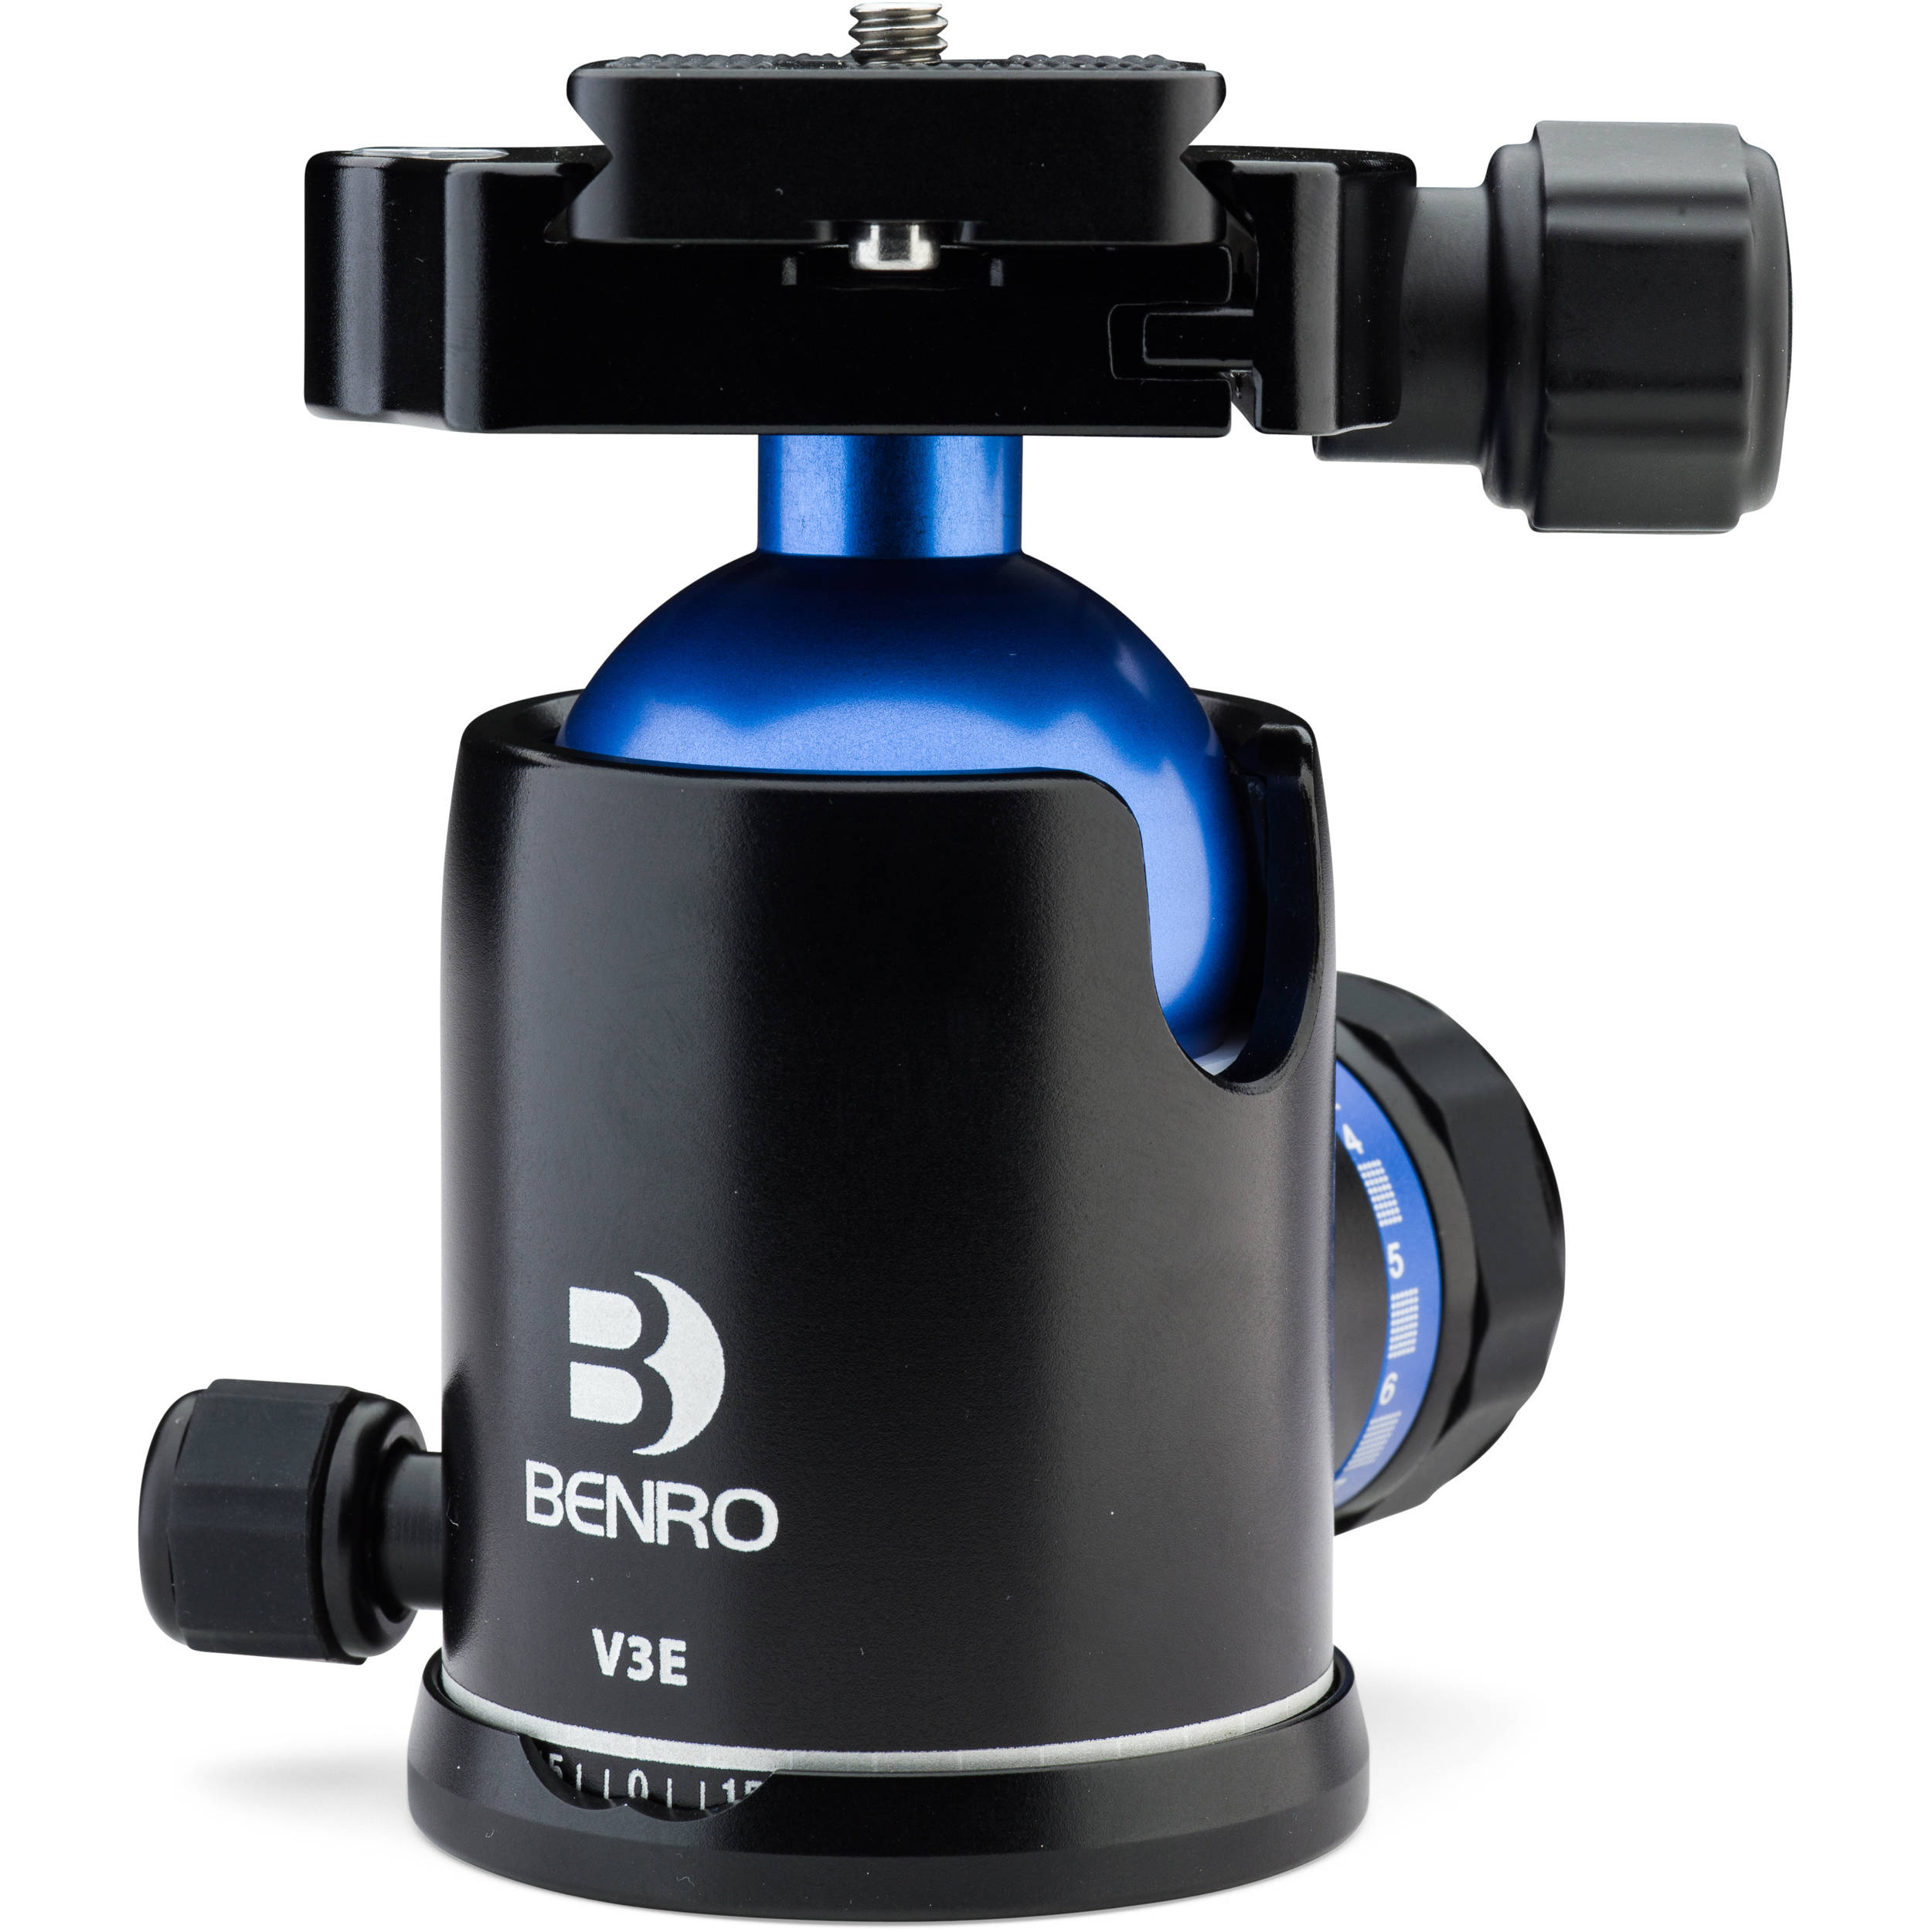 Benro V3E Triple Action Ball Head